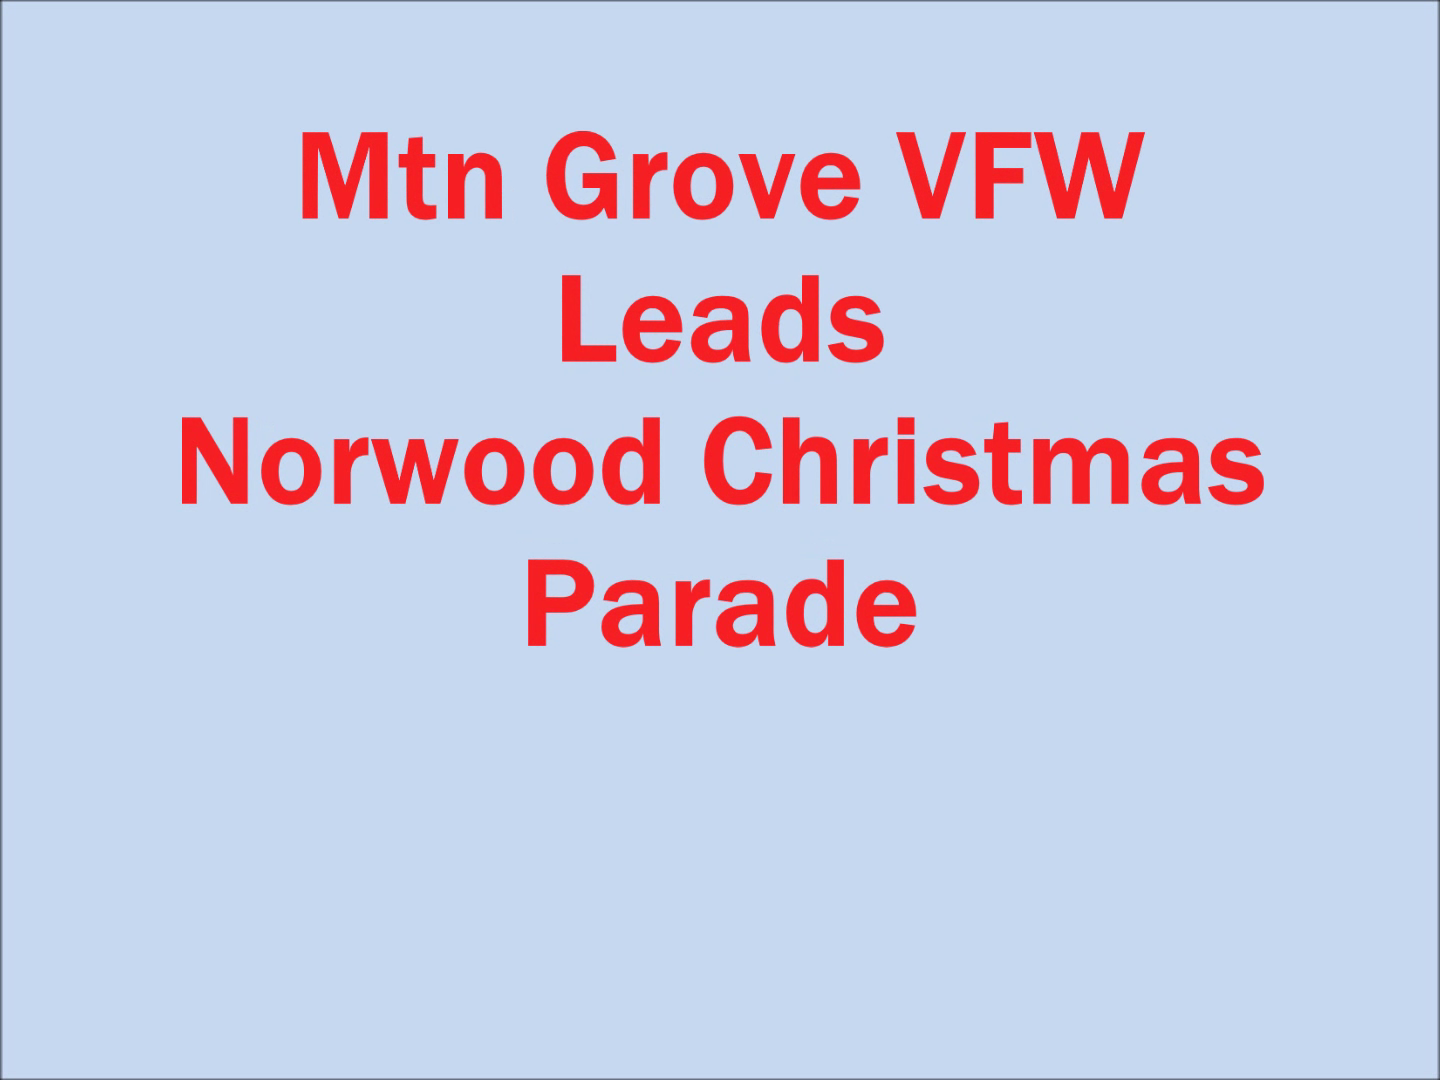 Mtn Grove VFW Leads Parade